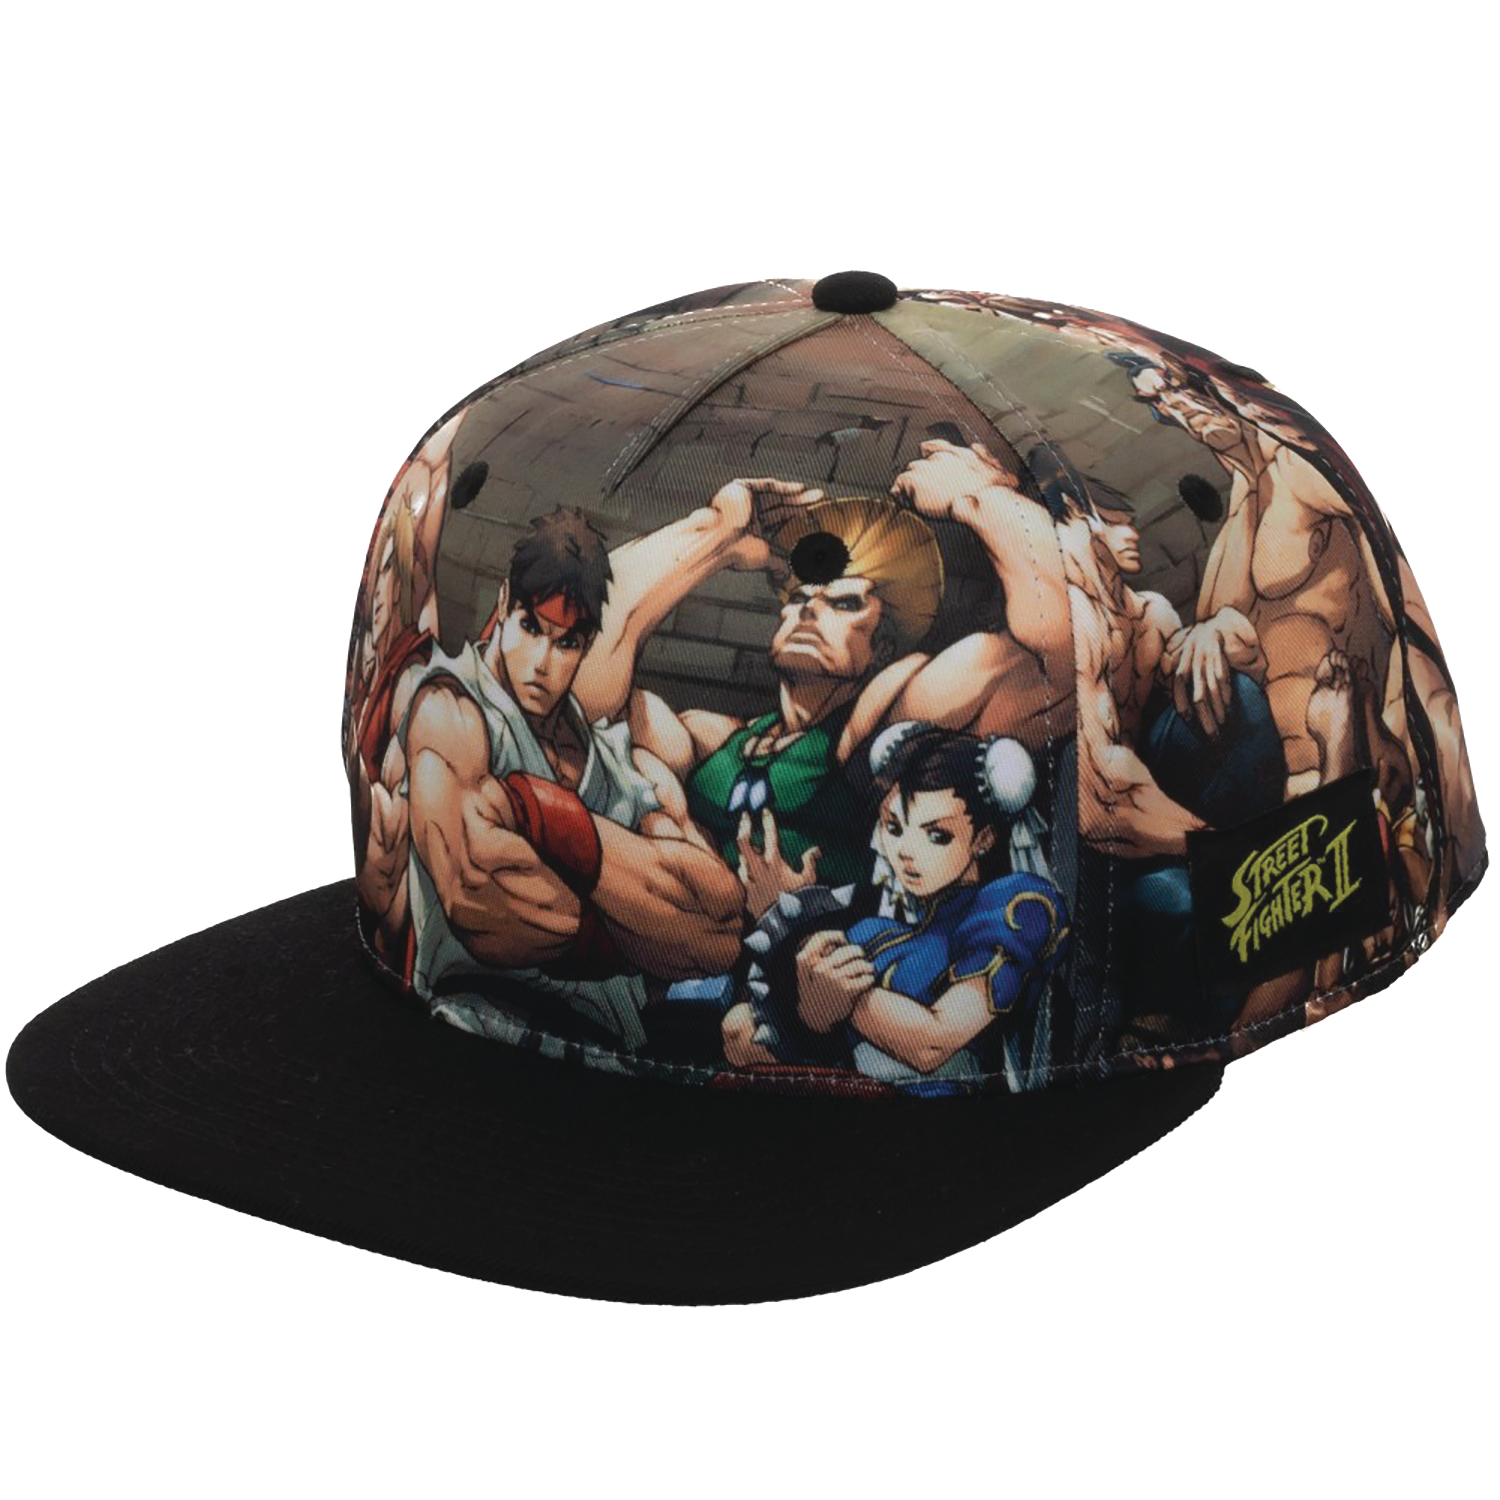 STREET FIGHTER SUBLIMATED SNAPBACK CAP